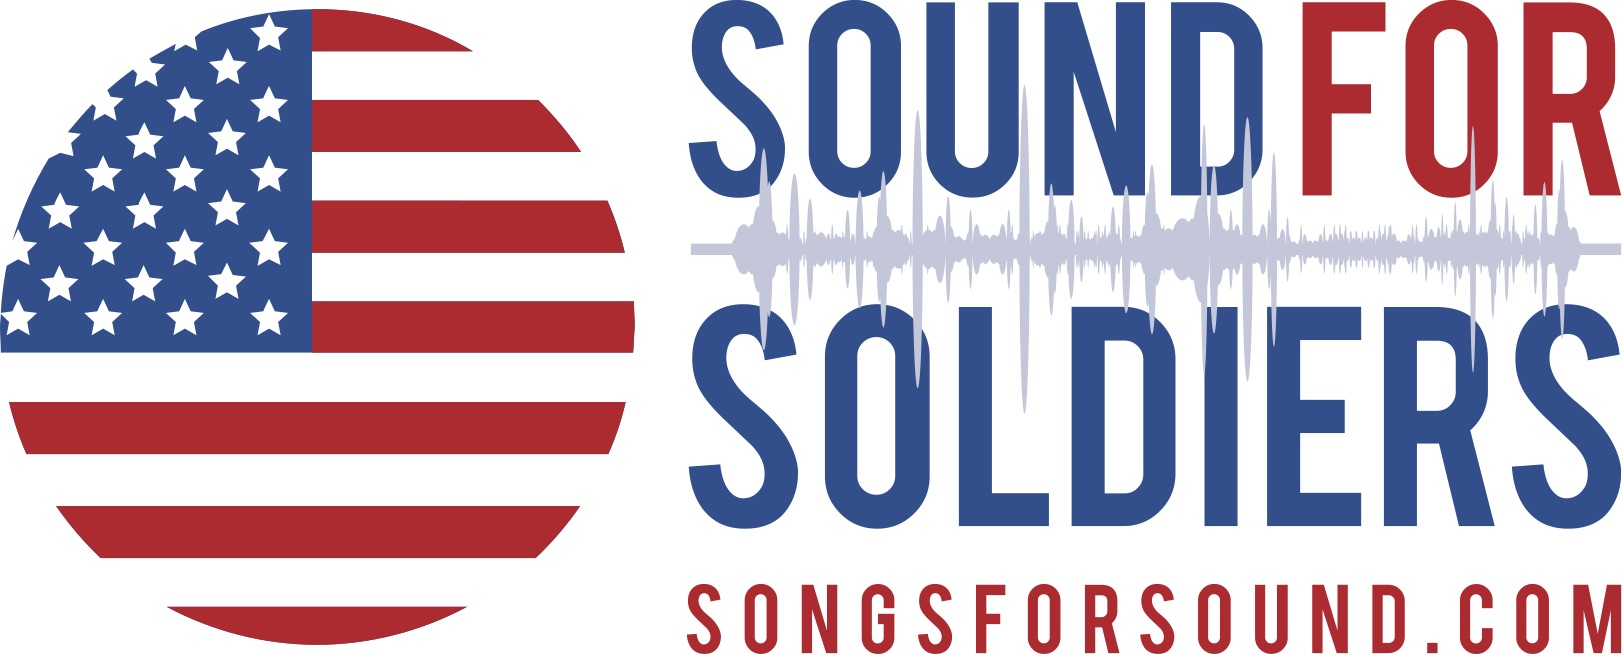 Songs for Sound : What We Do : Programs & Services : Sound